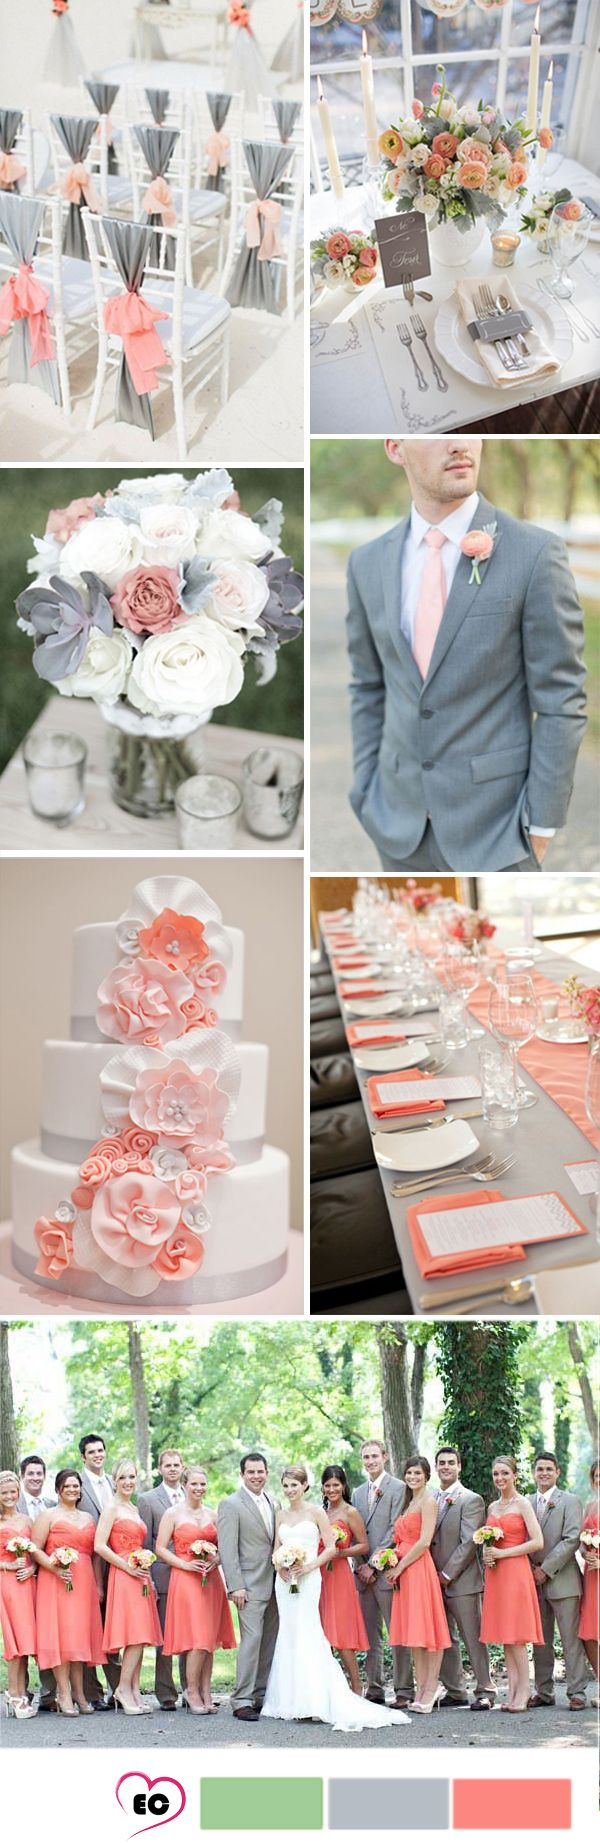 Girls in coral dresses, and guys in gray suits with coral ties. :) | The  future Mrs Kuhn --  | Pinterest | Coral tie, Coral dress and Gray